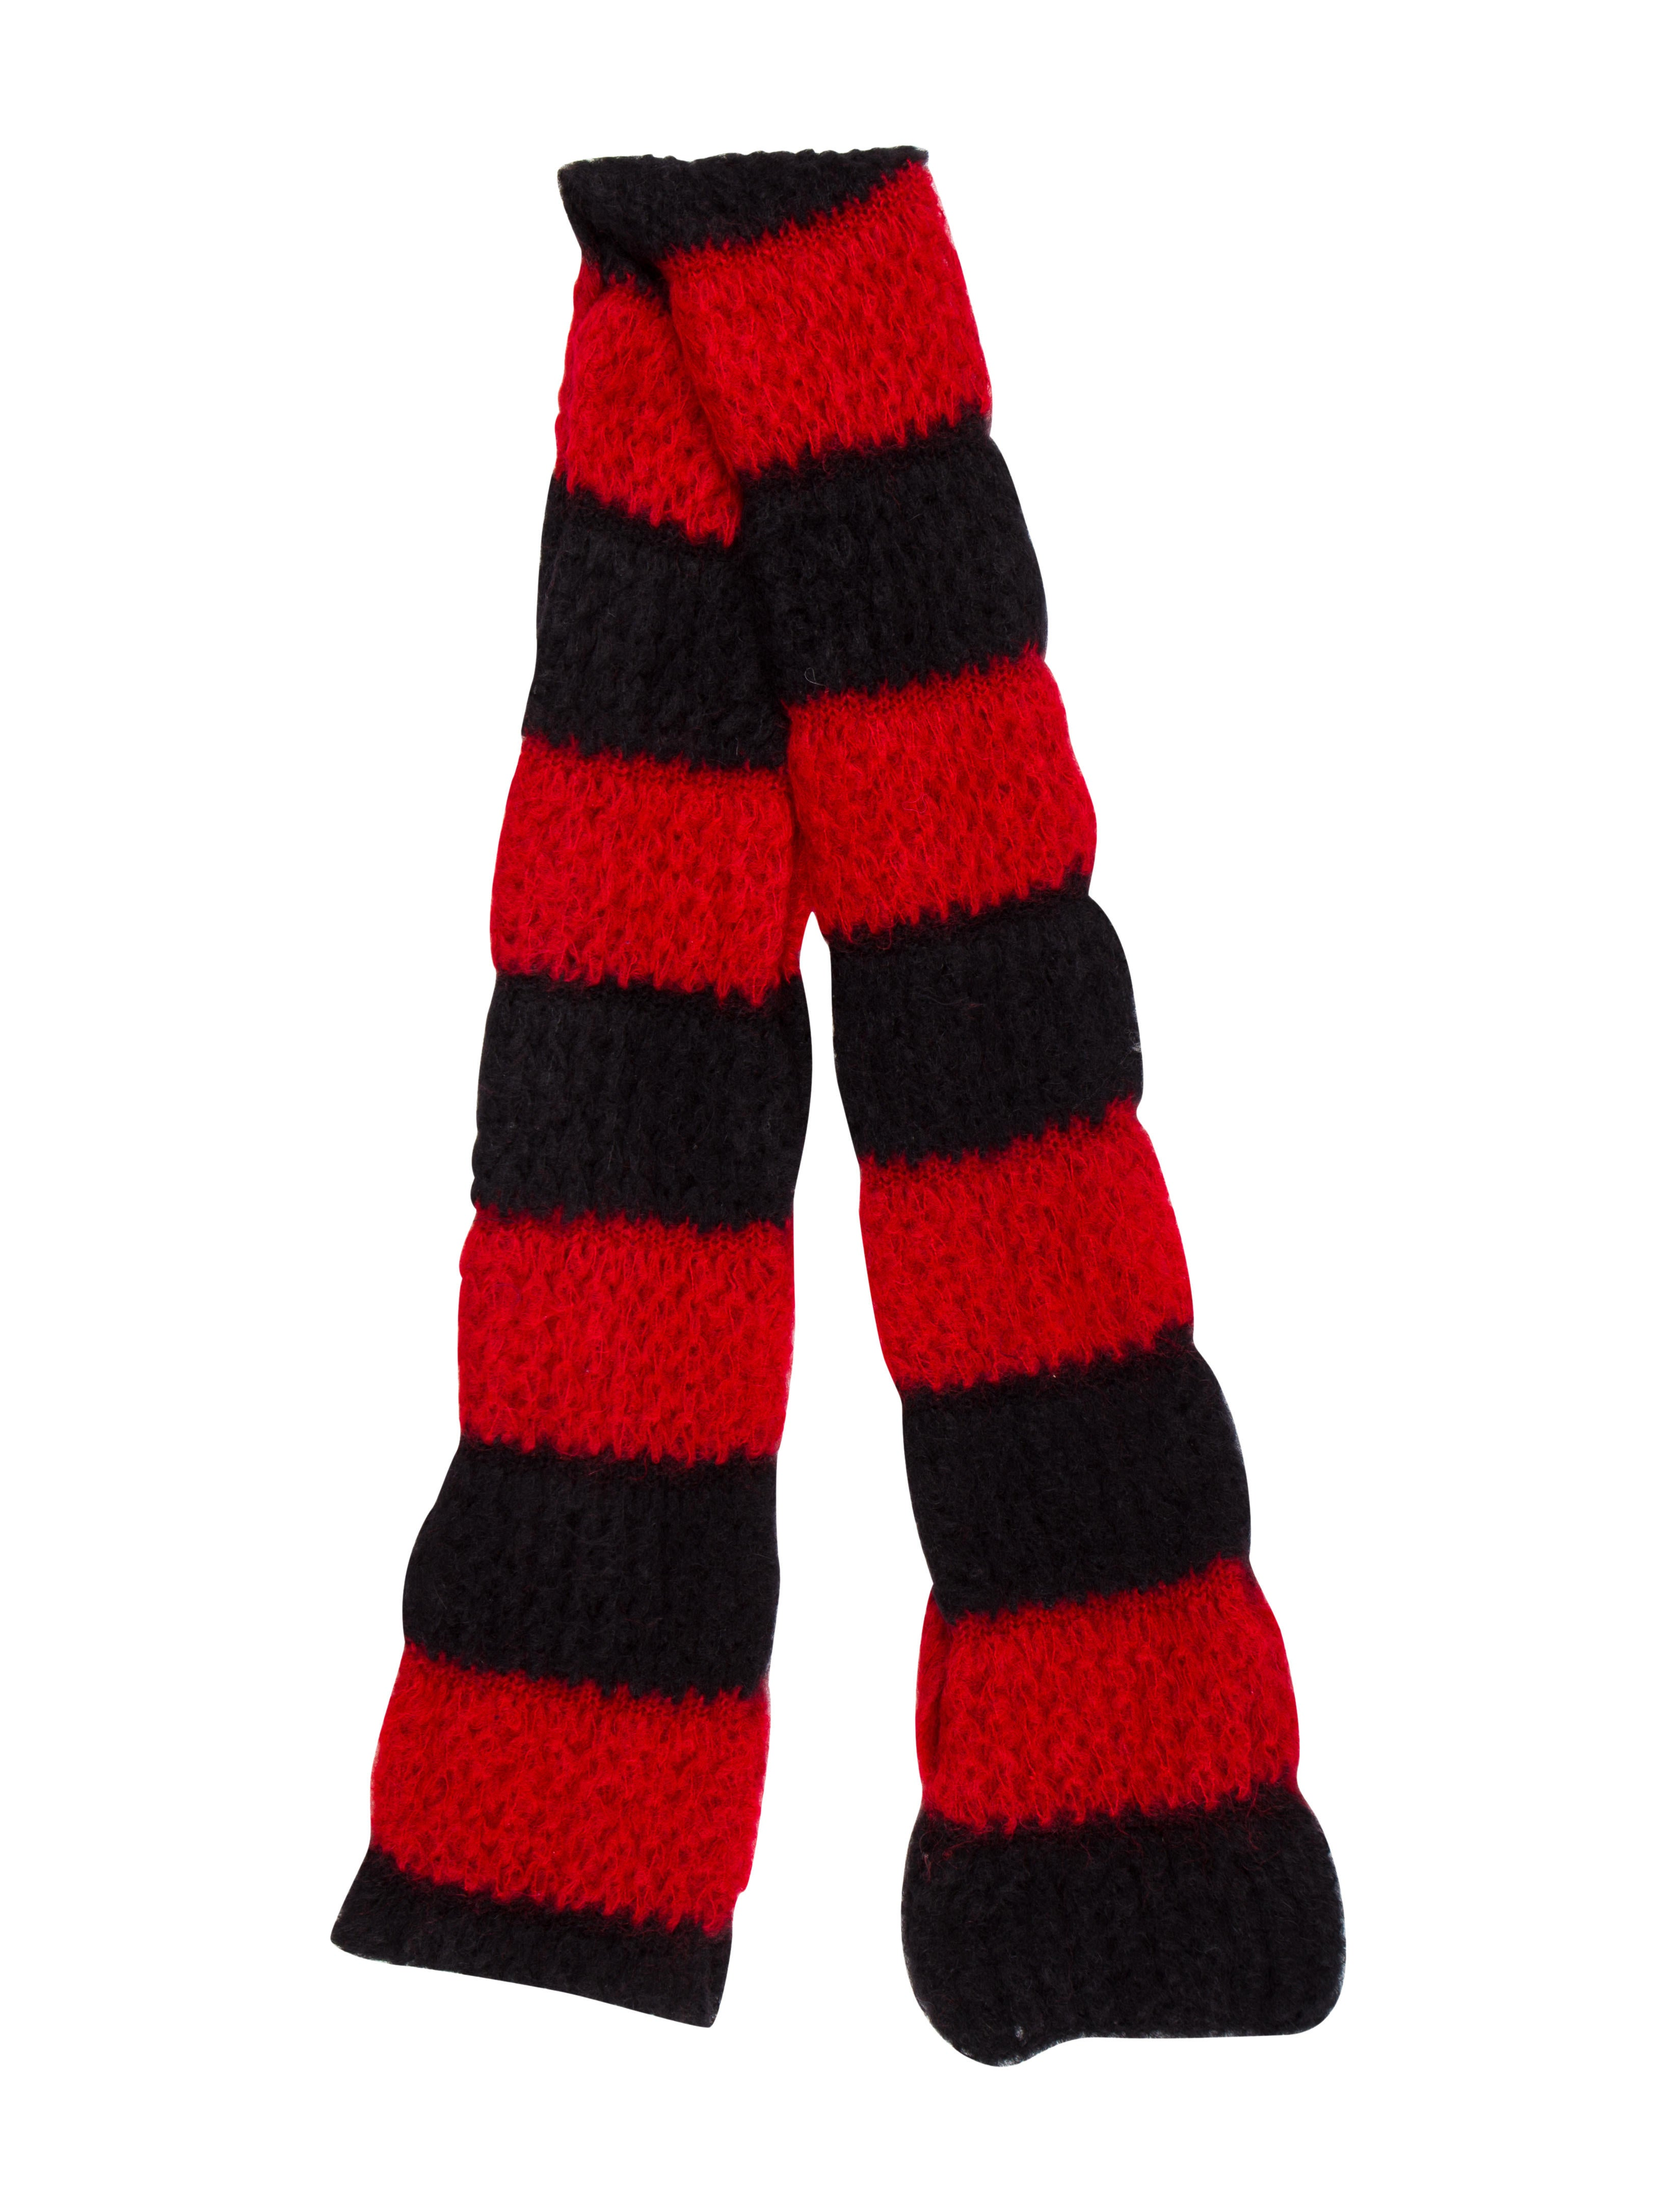 2013 Striped Woven Scarf by Saint Laurent